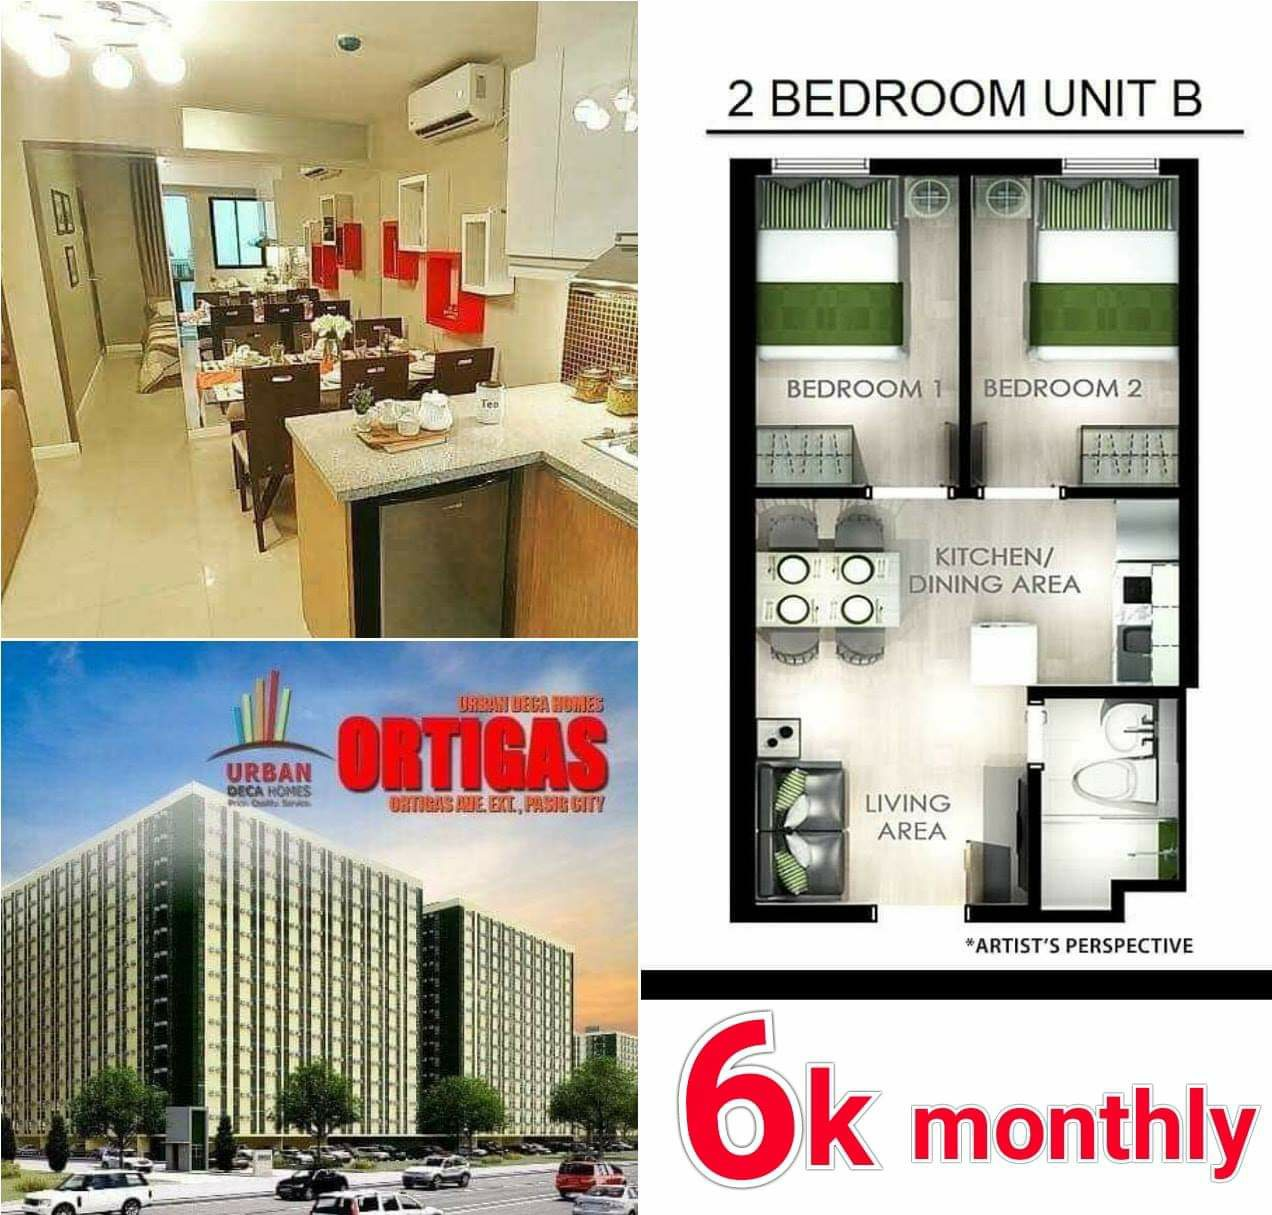 Equity Apartments Login: Affordable Condo Ortigas Extension